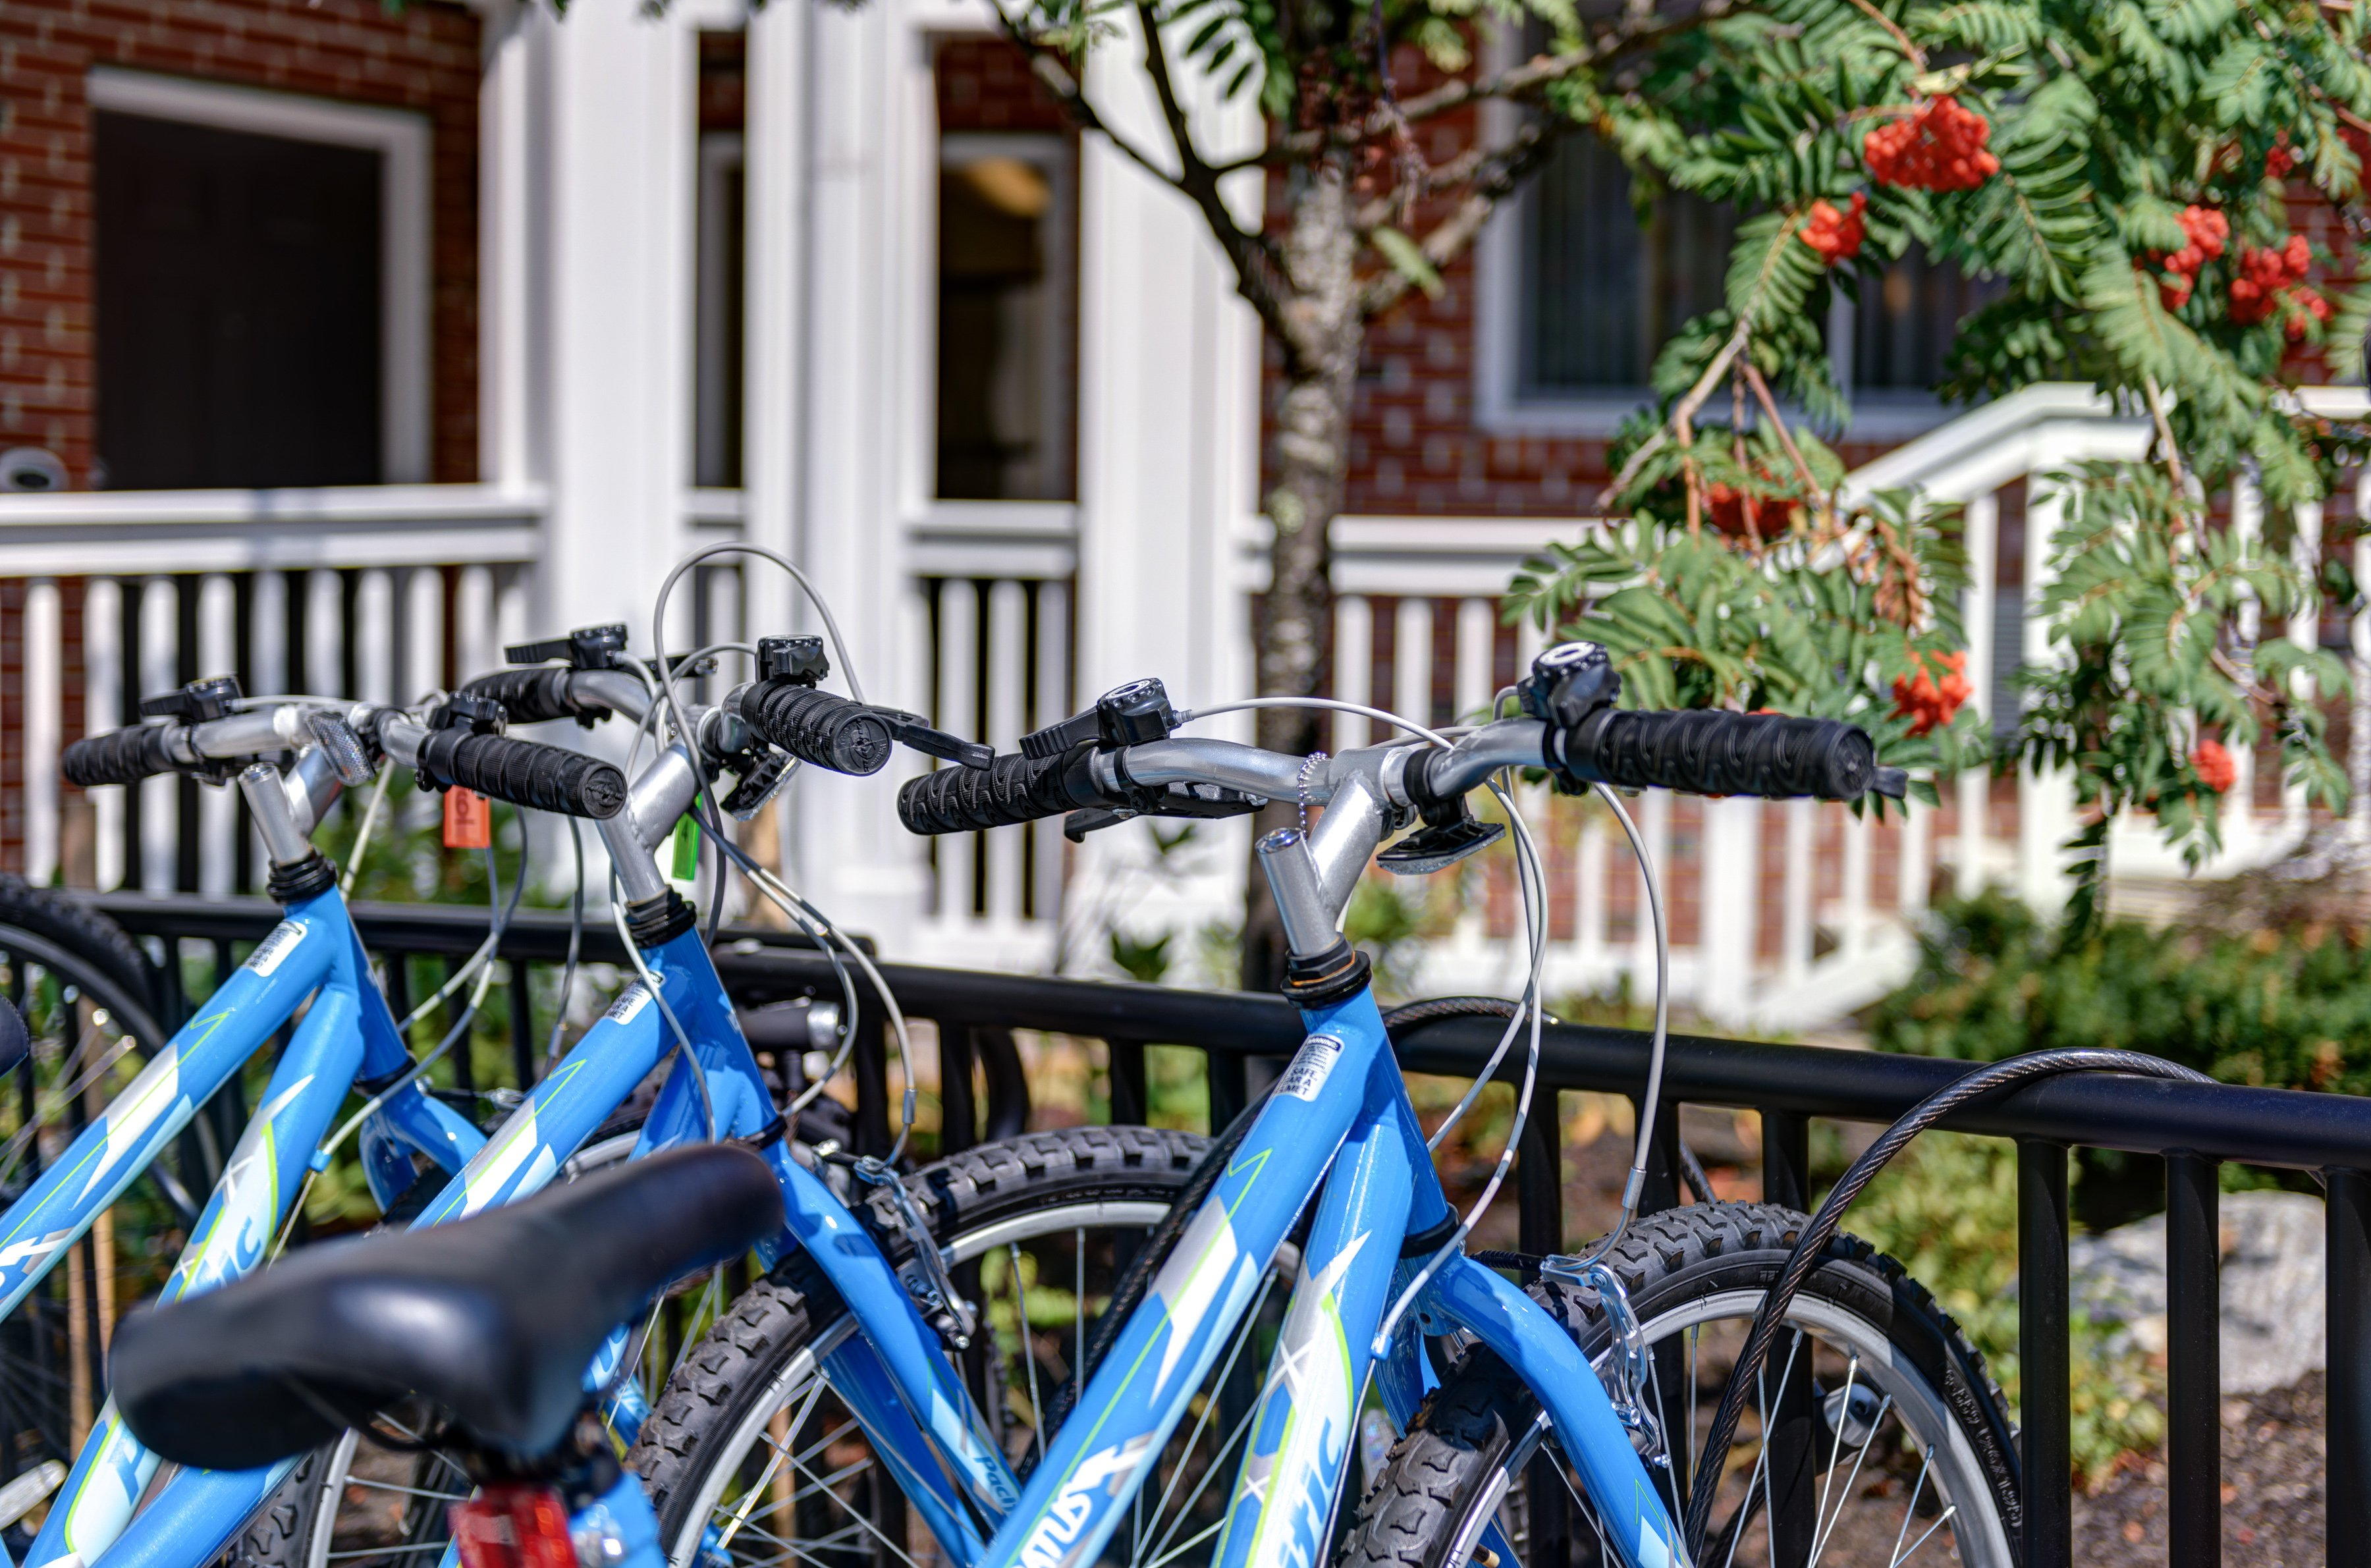 Our complimentary bike rentals offer the perfect way to explore the Kennebunk beaches and scenery.